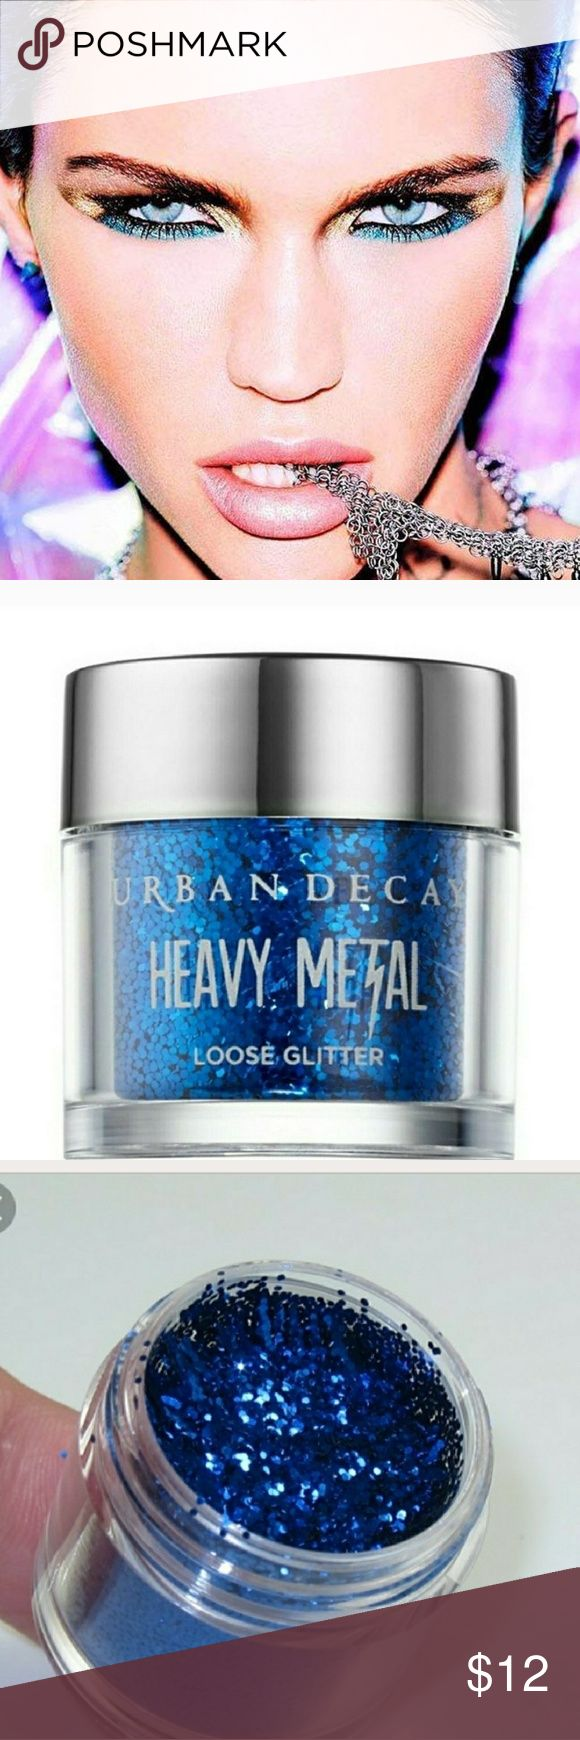 Urban Decay Heavy Metal Glitter Eyeshadow NWT Urban Decay Heavy Metal Loose Glitter Eyeshadow in Reverb, a bright blue loose glitter. NWT. Sealed packaging. Urban Decay Makeup Eyeshadow #urbandecaymakeup #glittereyeshadows